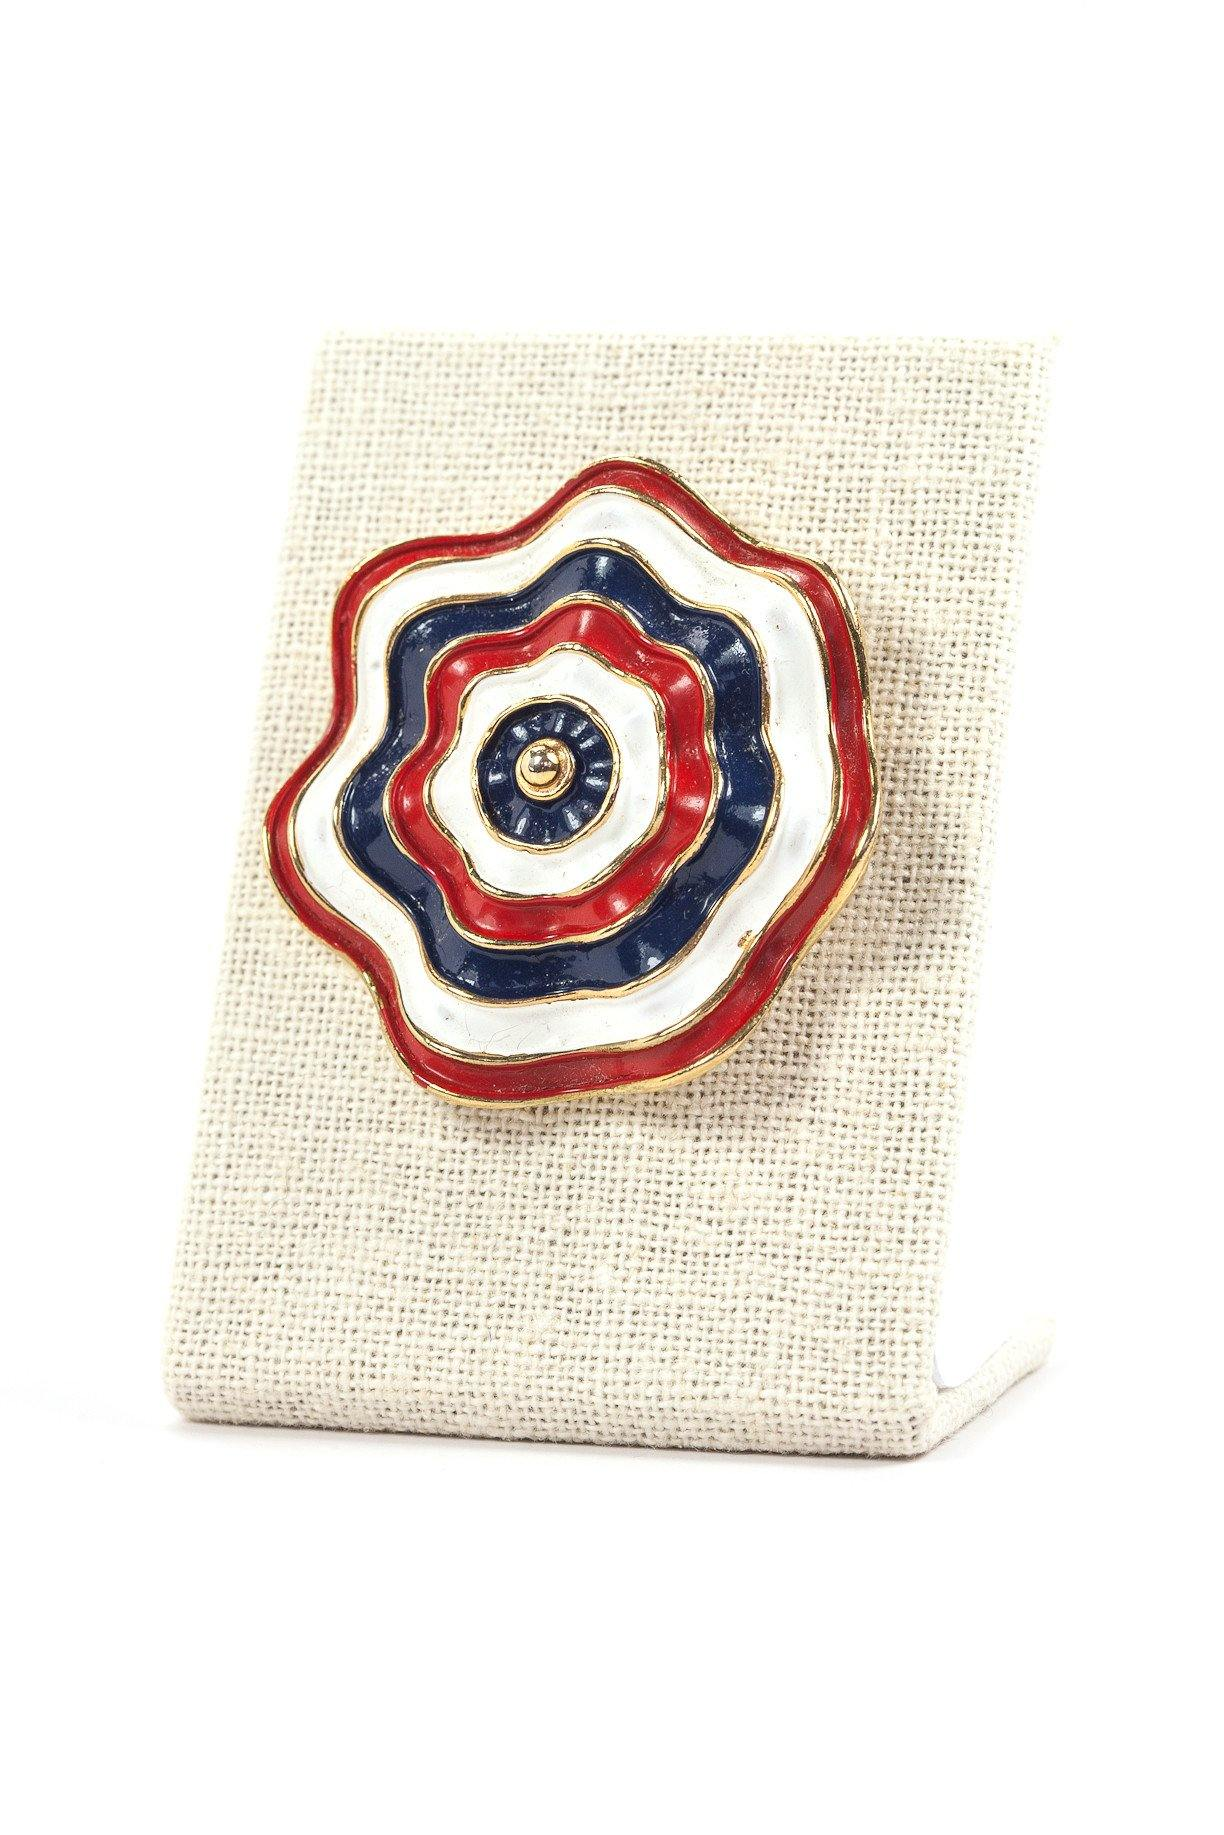 60's__Marvella__Red, White & Blue Brooch